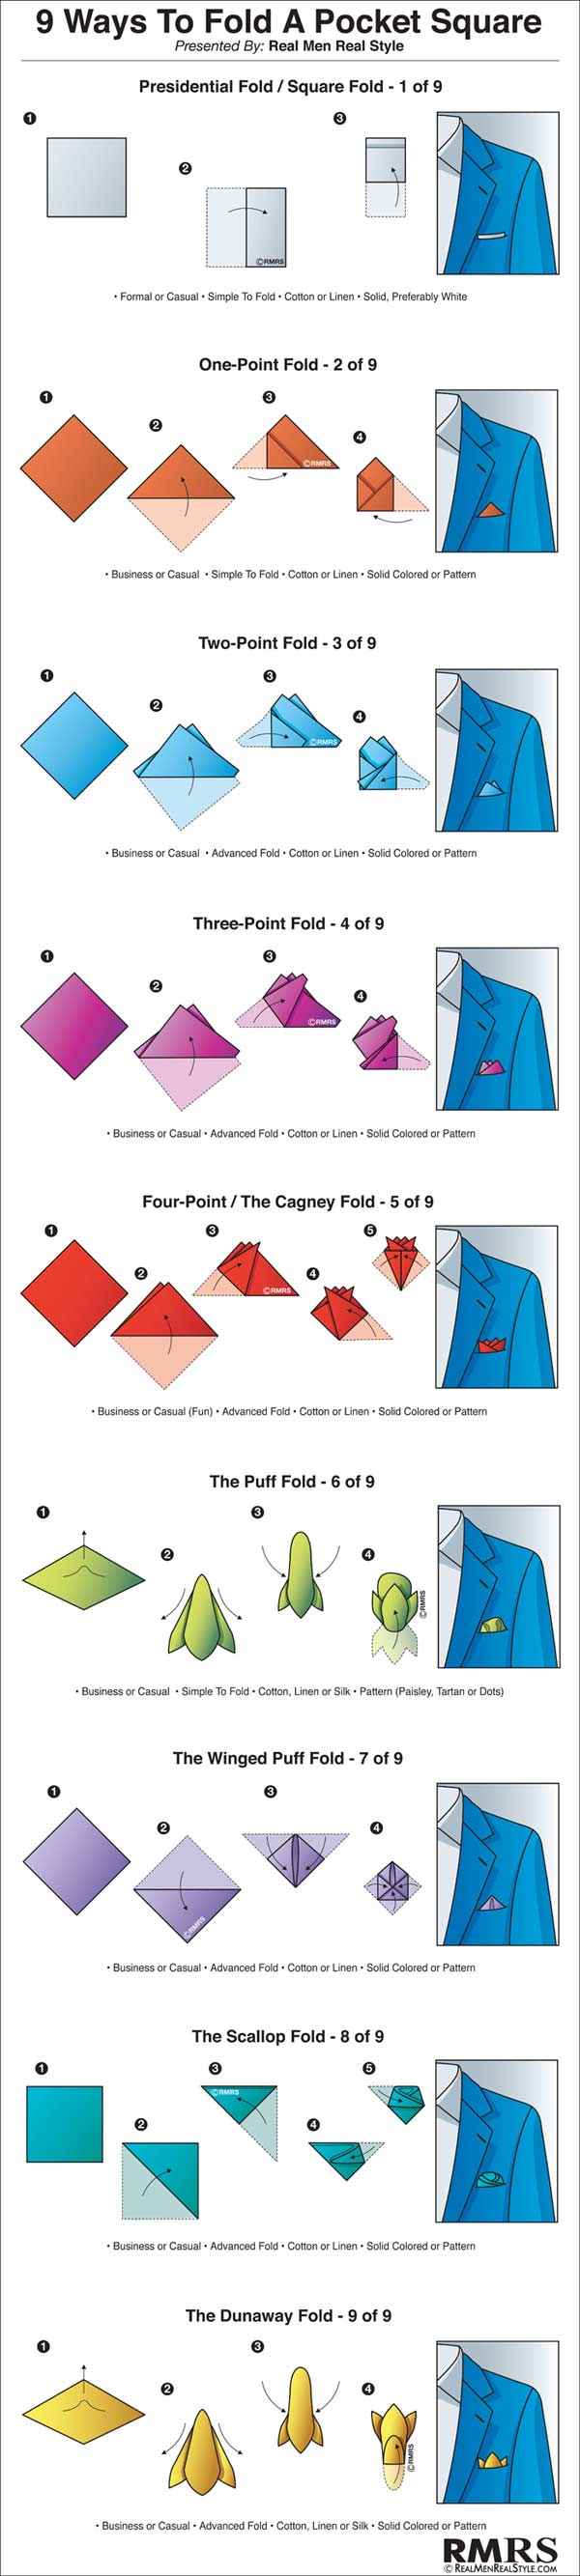 9 Ways To Fold A Pocket Square